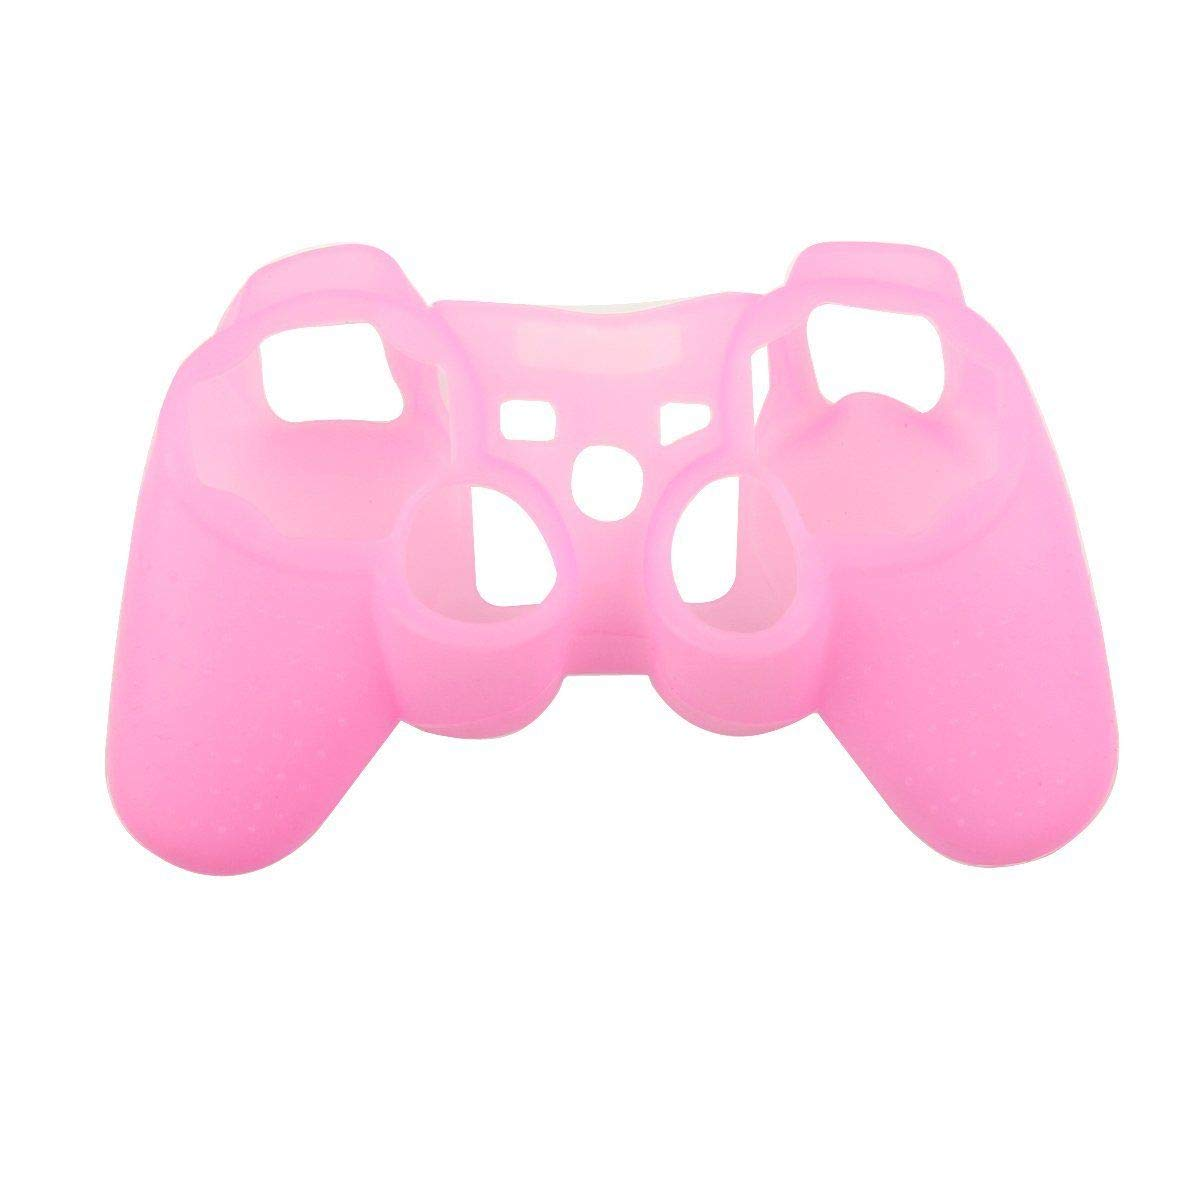 Amazon.com: Soft Silicone Skin Protector Cover Case for Sony ...